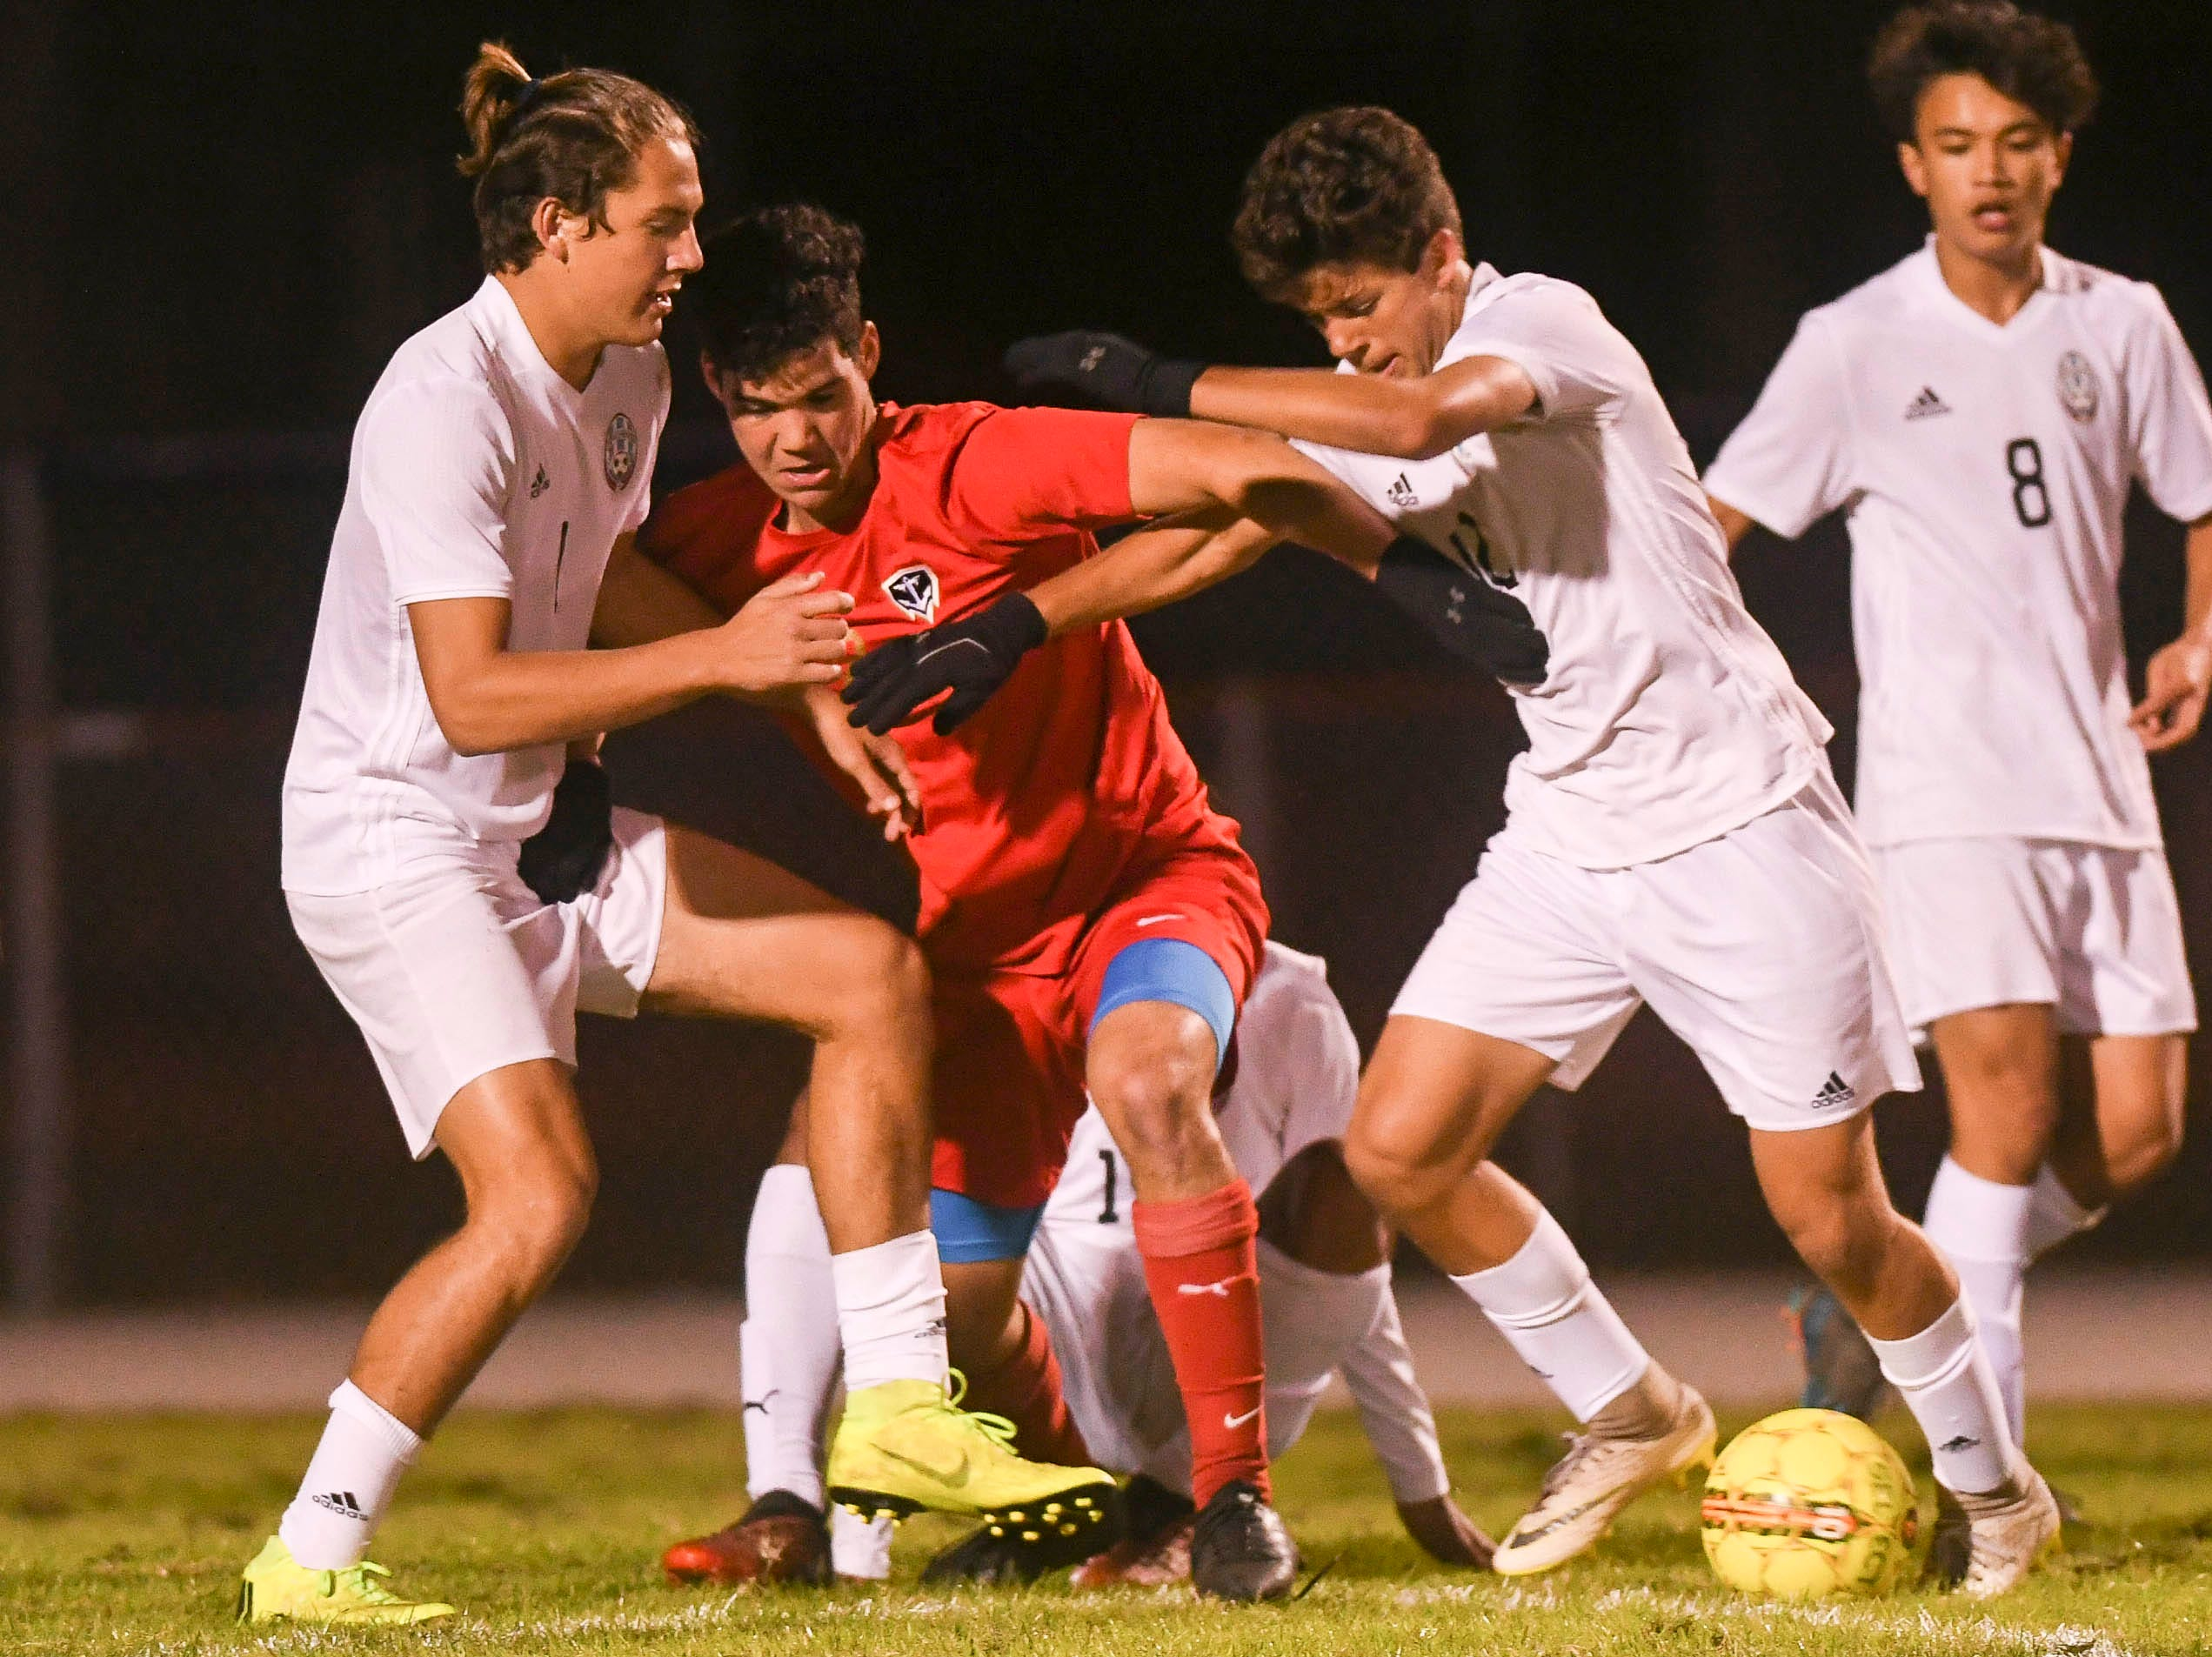 Richie Chamberlin (left) and Luis Esteban Son (right) tie up Markus Mills of Eau Gallie during Thursday's game in Melbourne.